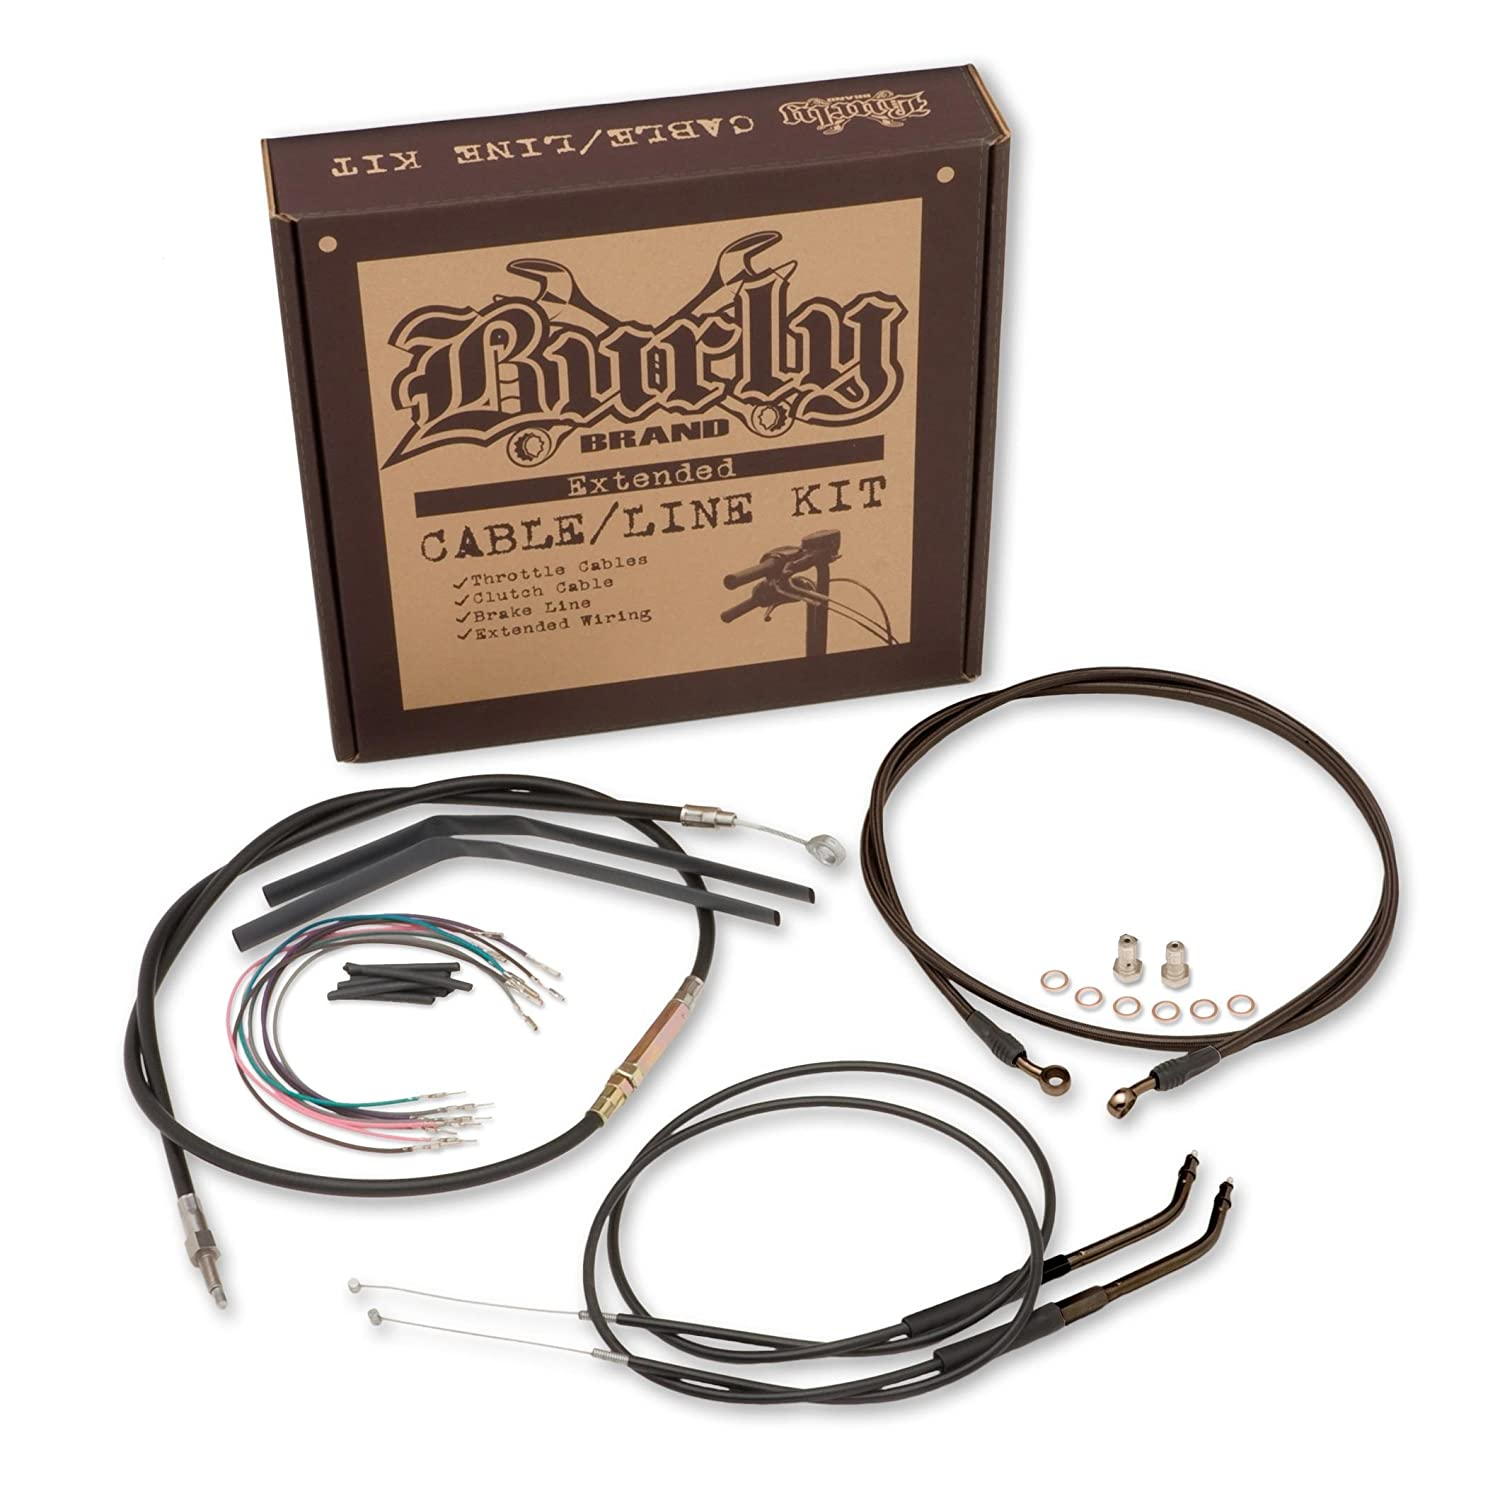 BURLY B30-1013 Cable/Brake Line Kit for 16' Height Apehanger Handlebars